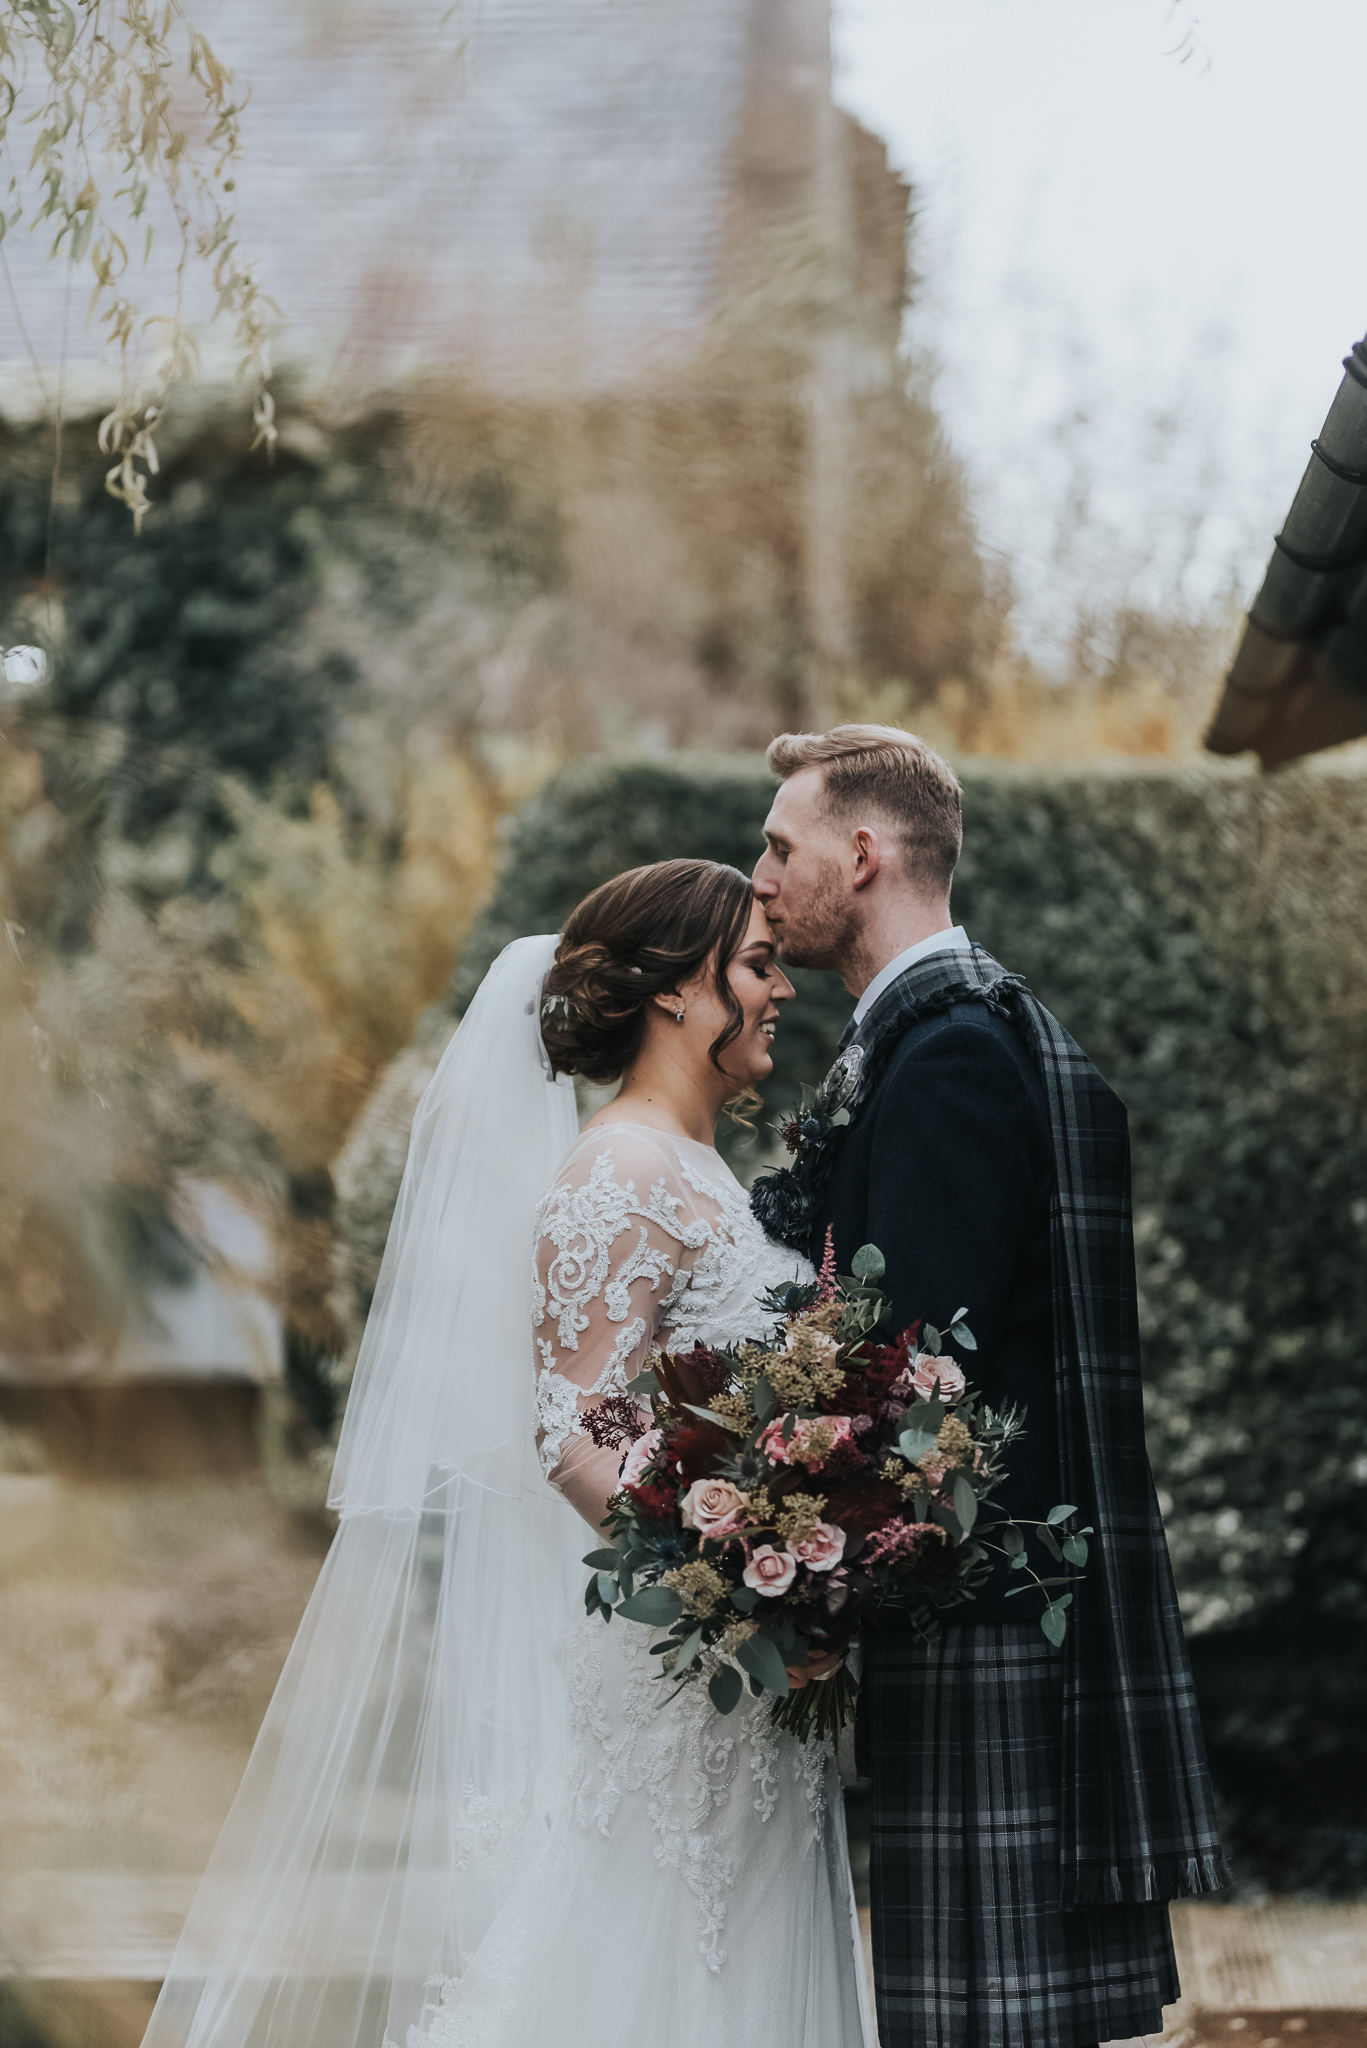 Dalduff Farm wedding photos, wedding Dalduff Farm, wedding photographer Edinburgh, wedding photographer Scotland, wedding photographer Glasgow, Karol Makula Photography, wedding photography Scotland, Scotland wedding photographer